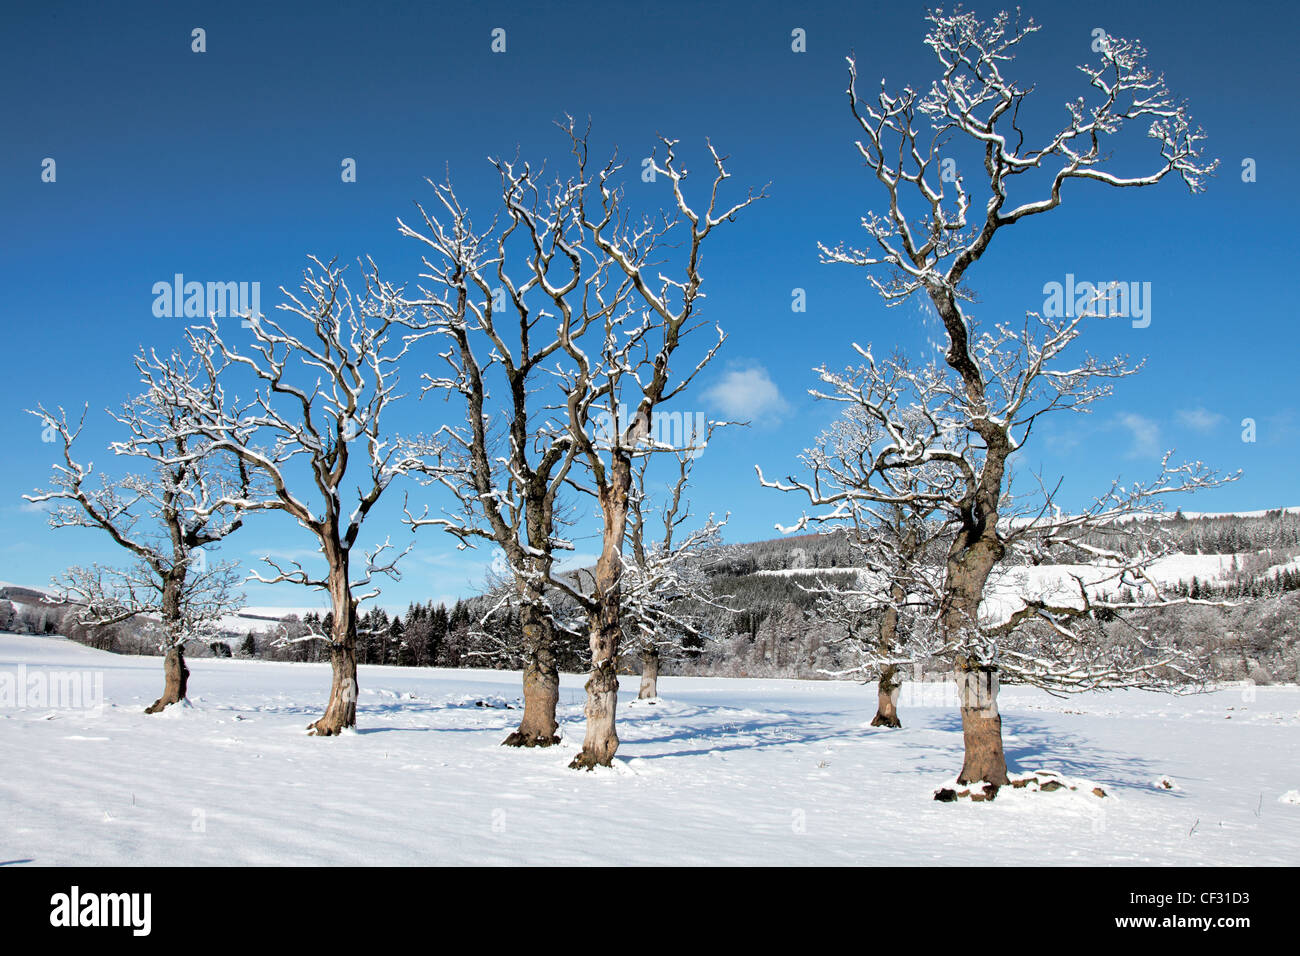 Bare winter trees laden with snow. - Stock Image